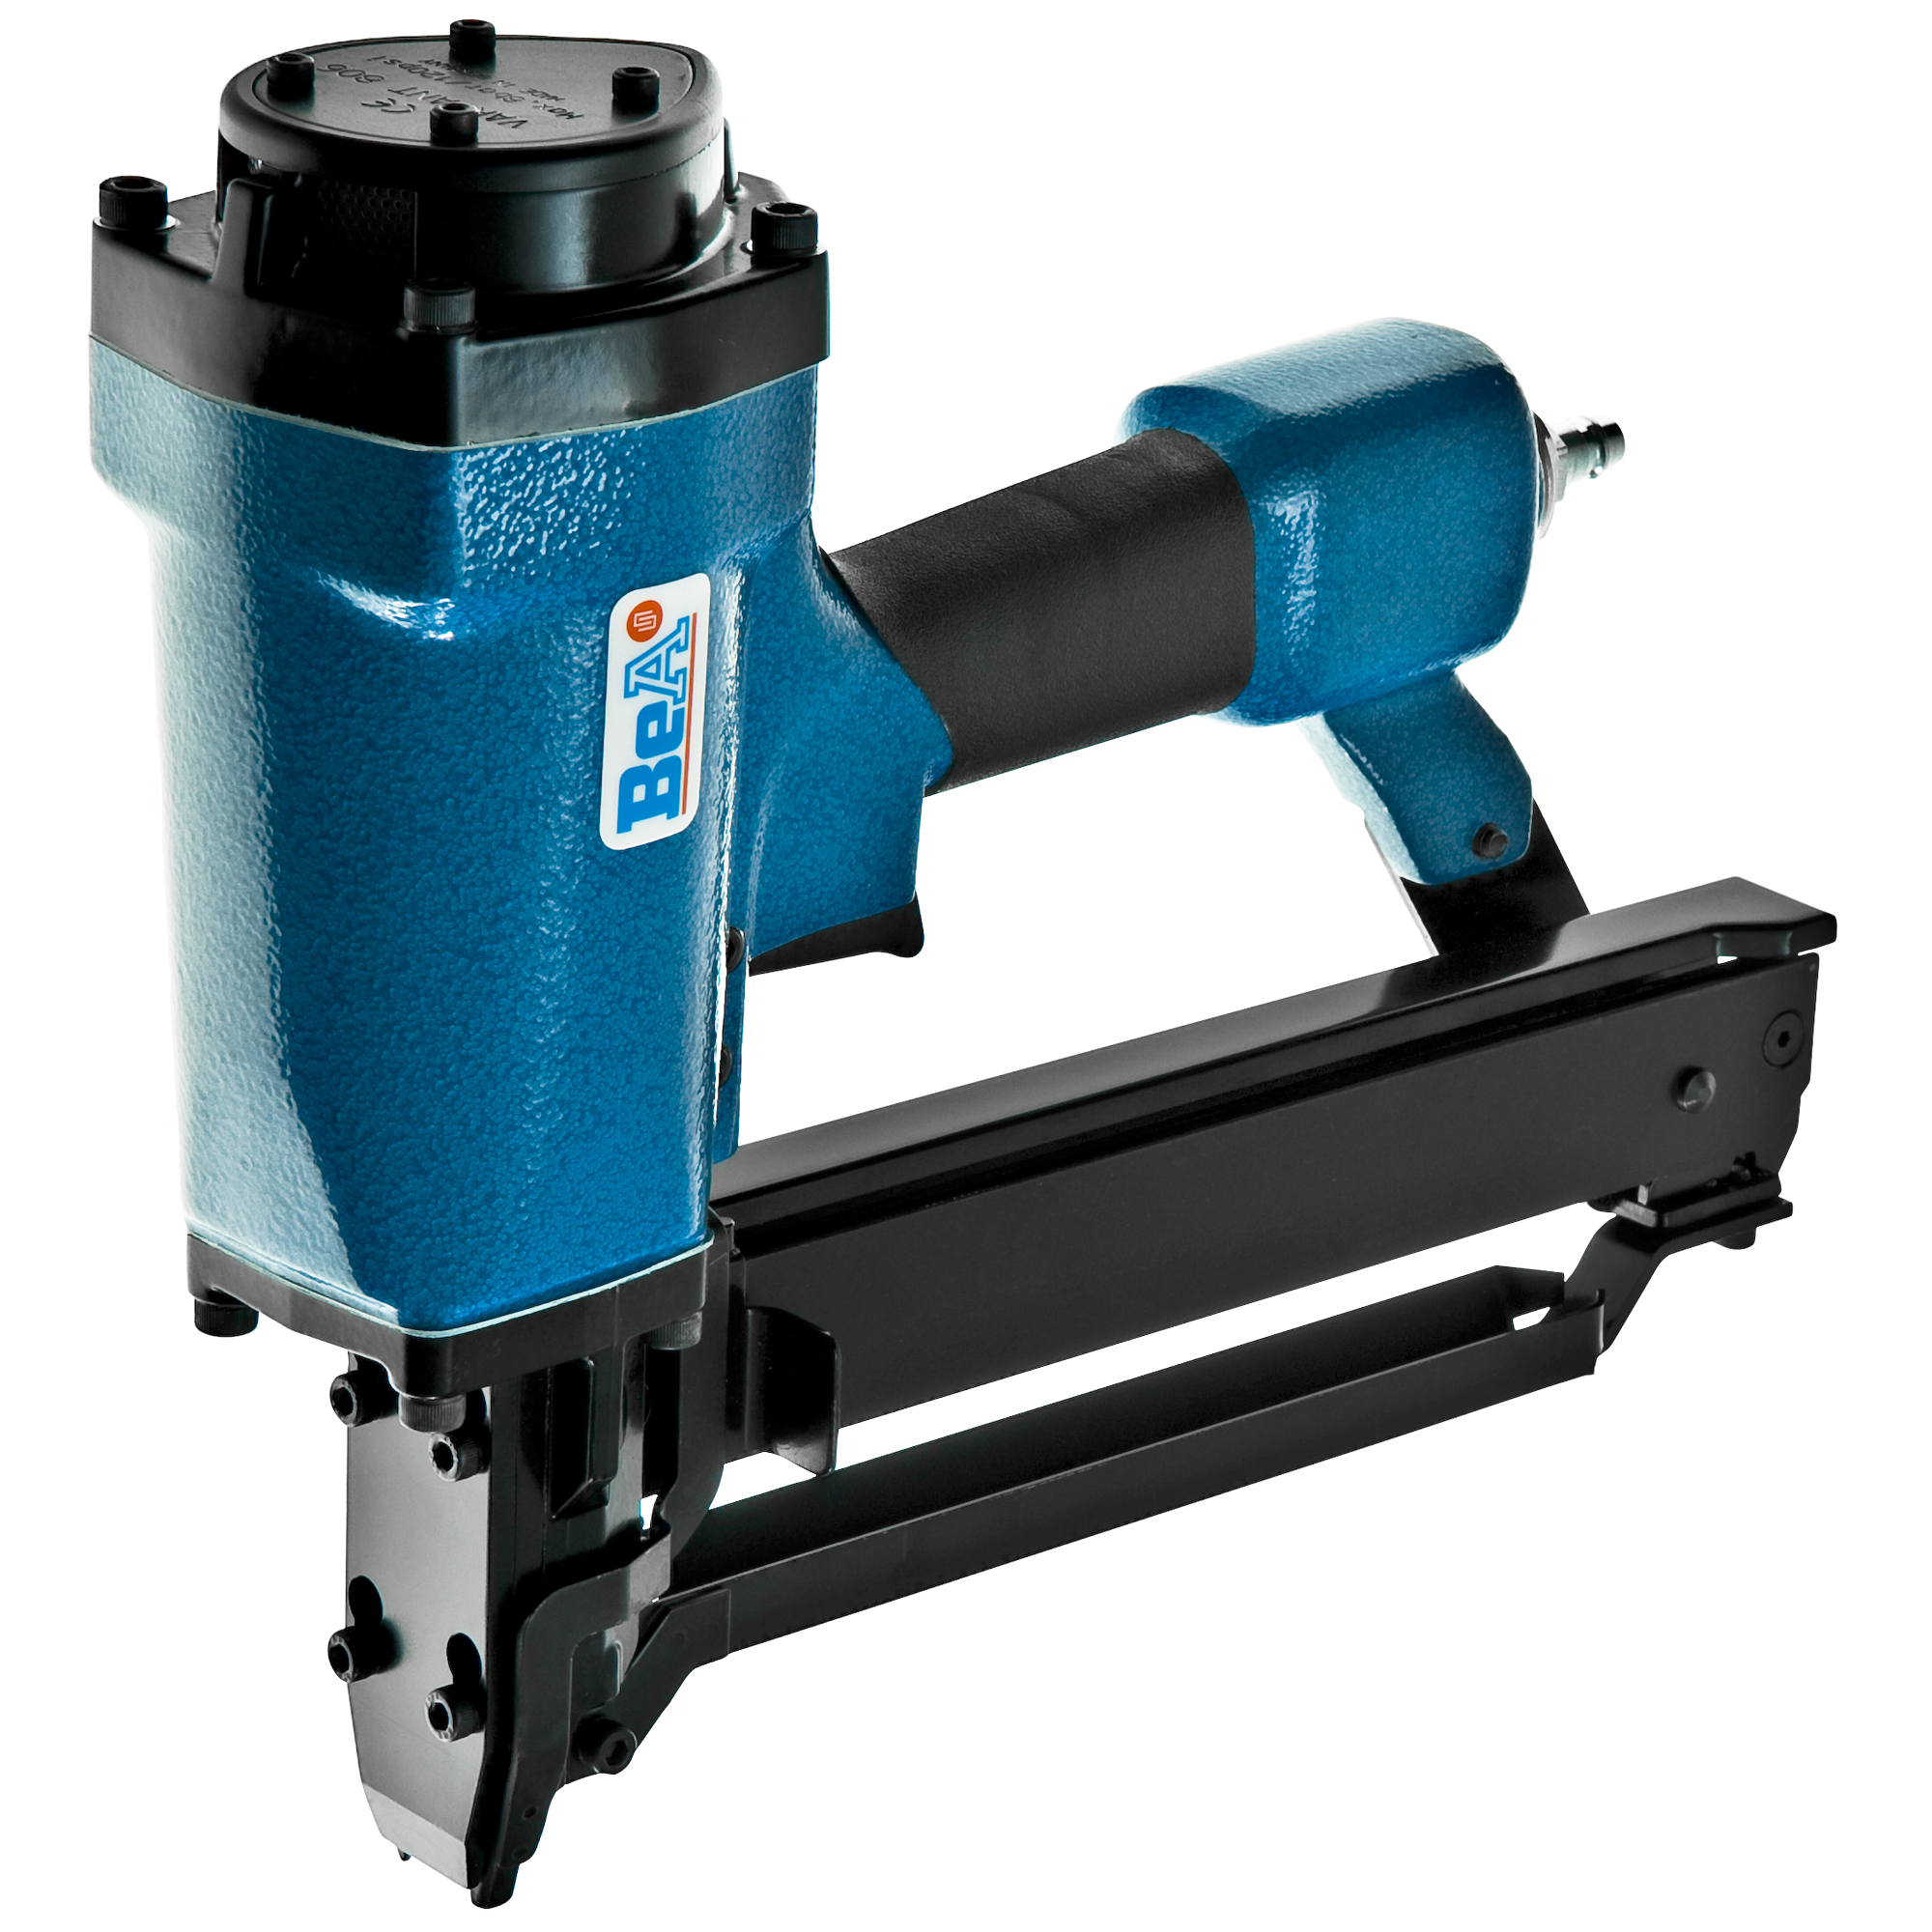 Combi staplers and nailers